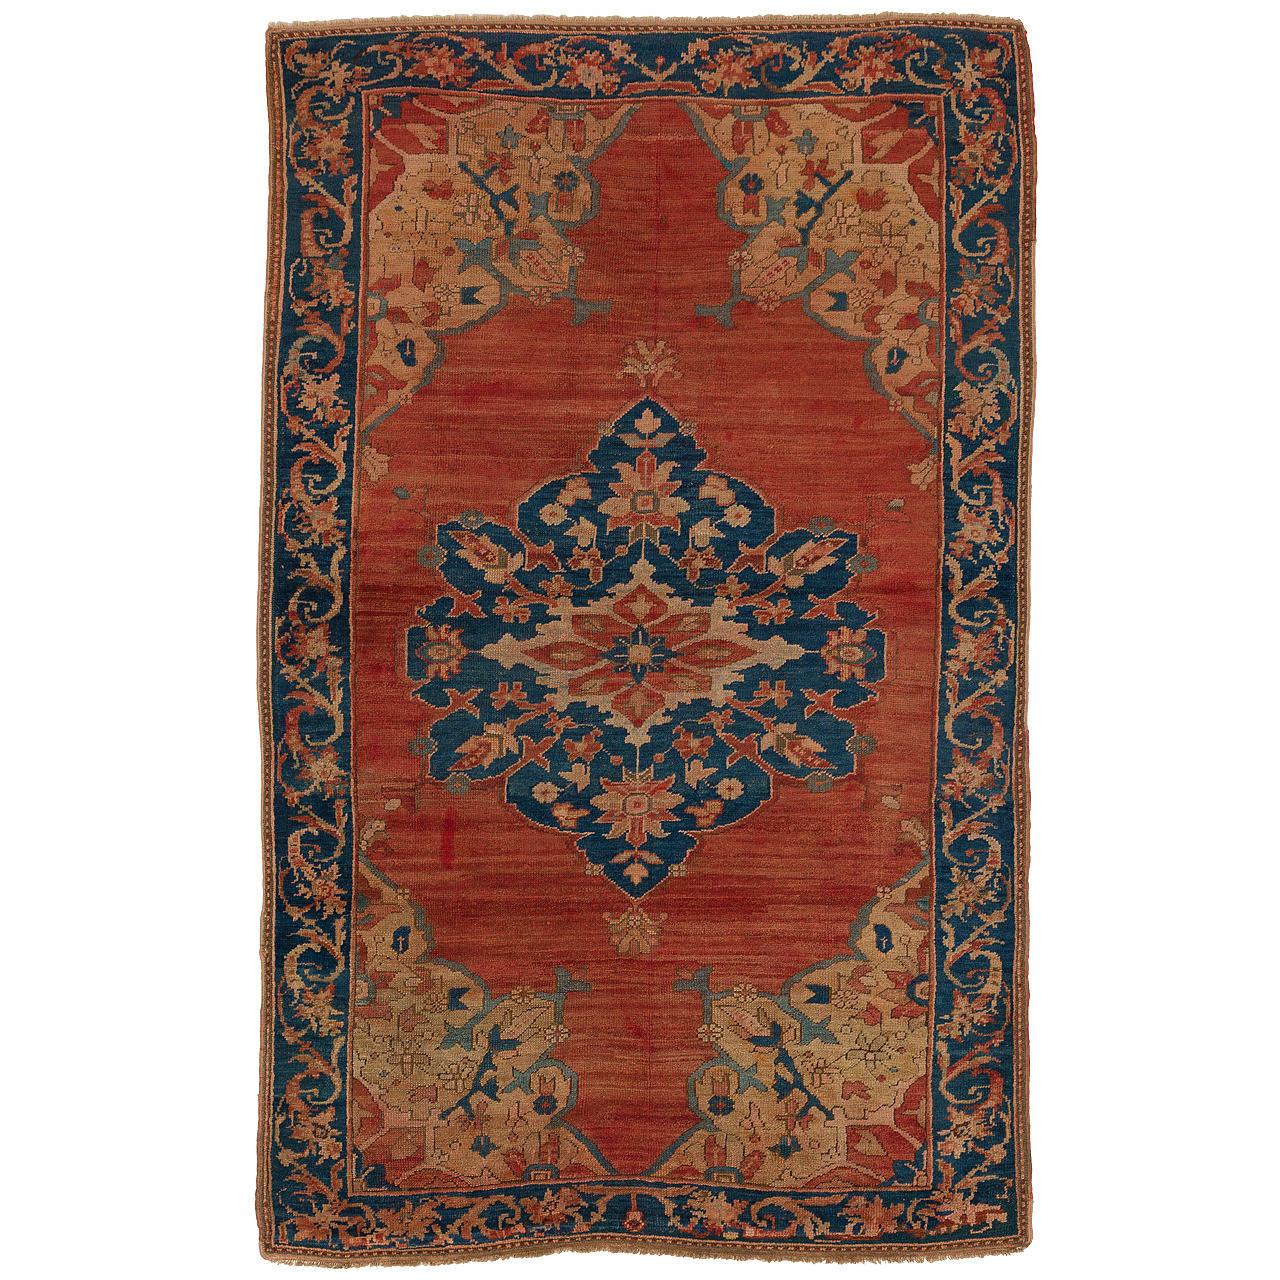 Antique Turkish Megri Rug In Terracotta And Blue Colors 1